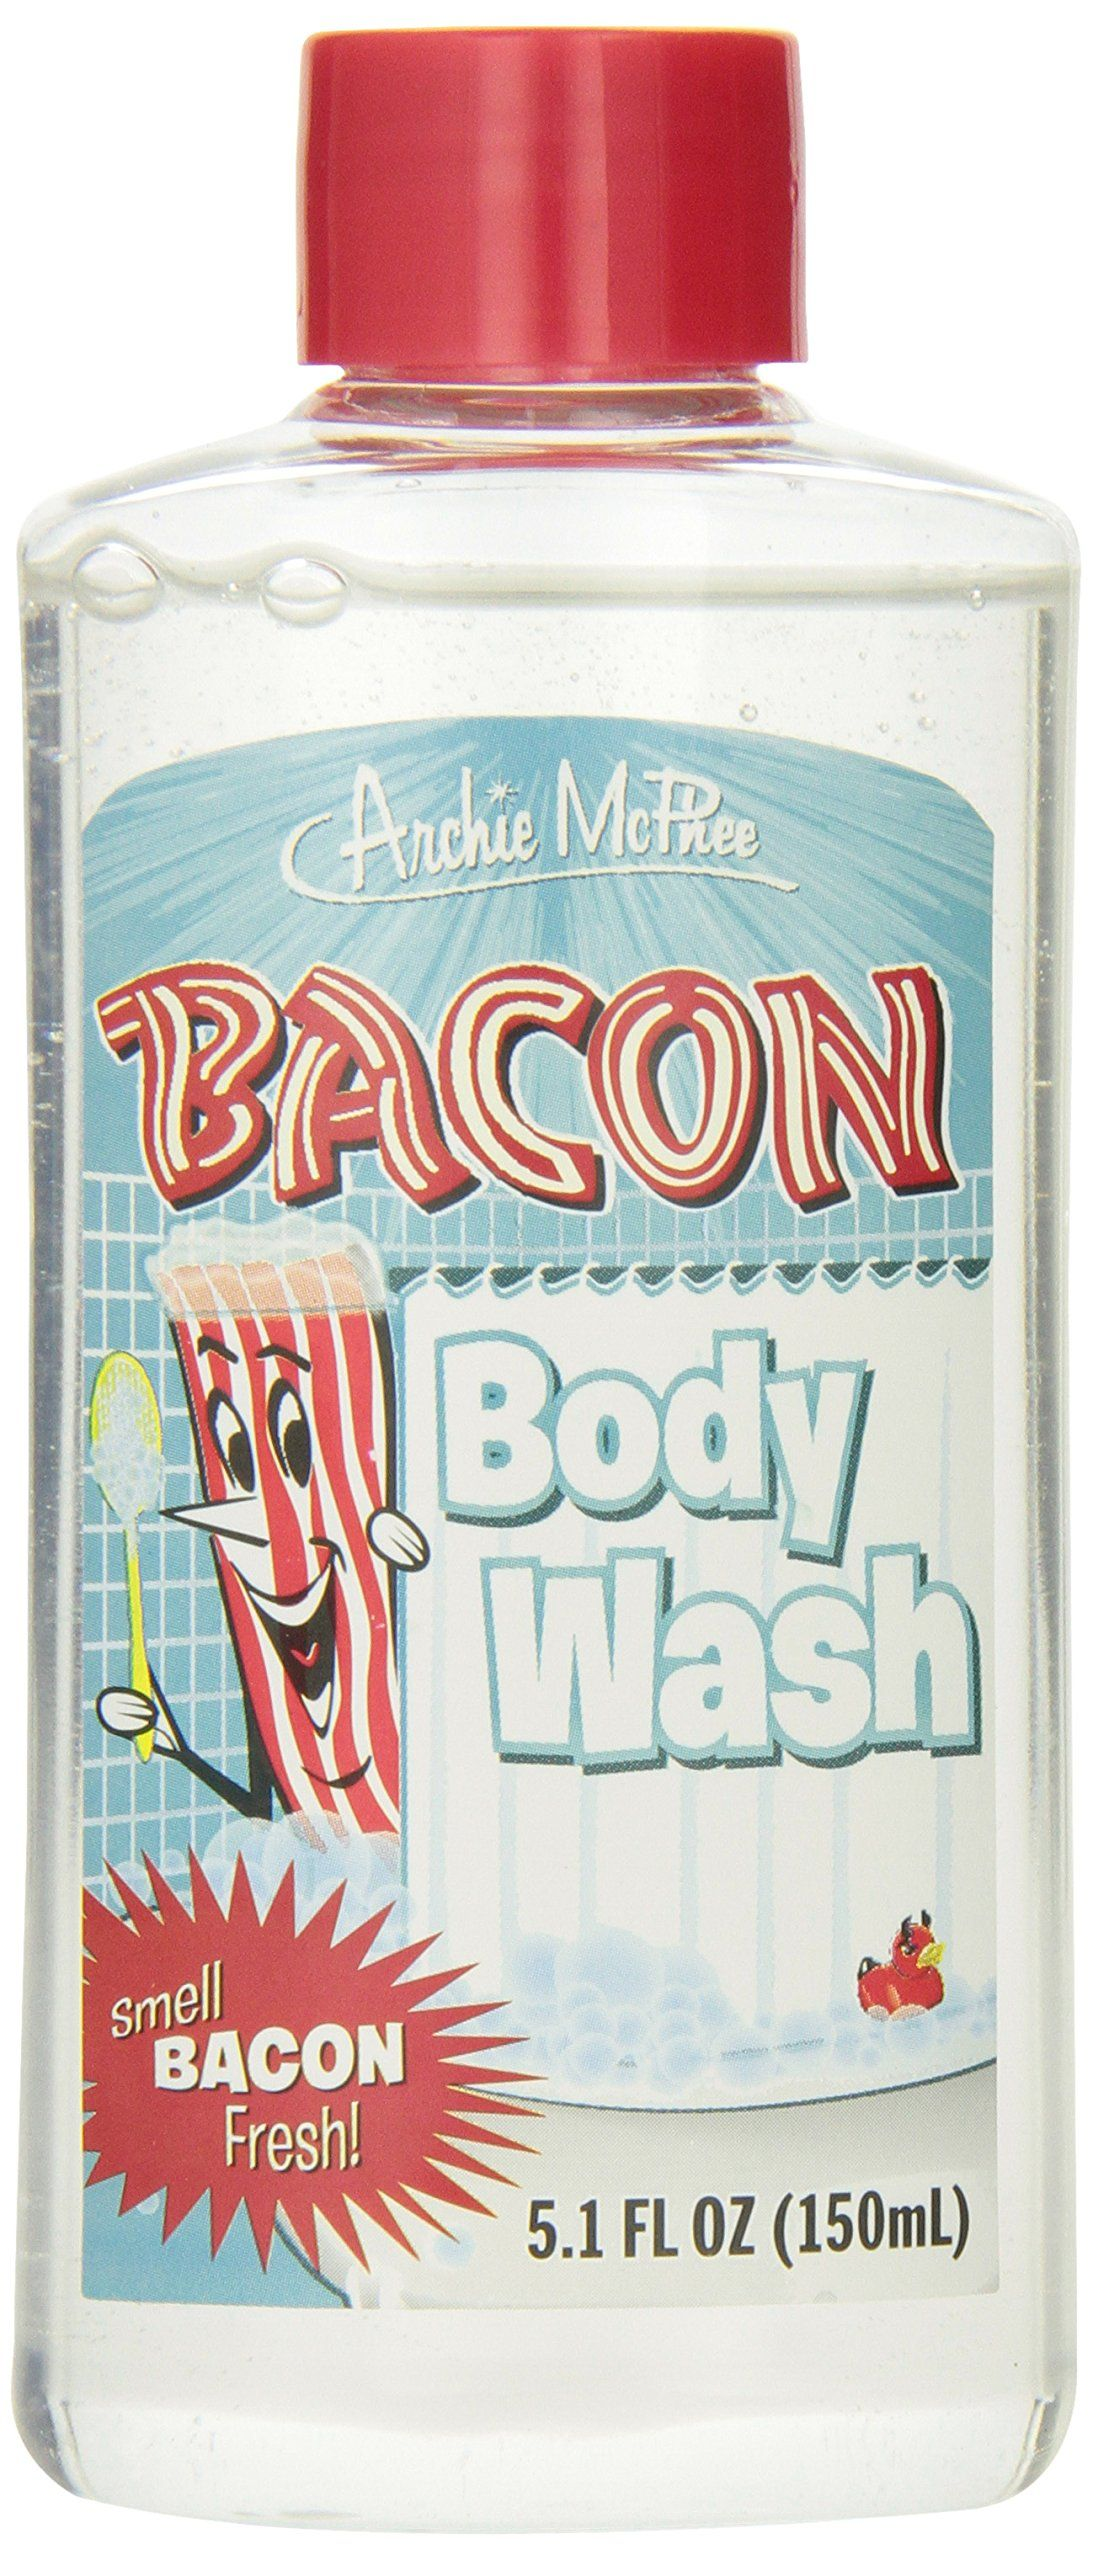 Accoutrements bacon body wash cheap gifts for dad